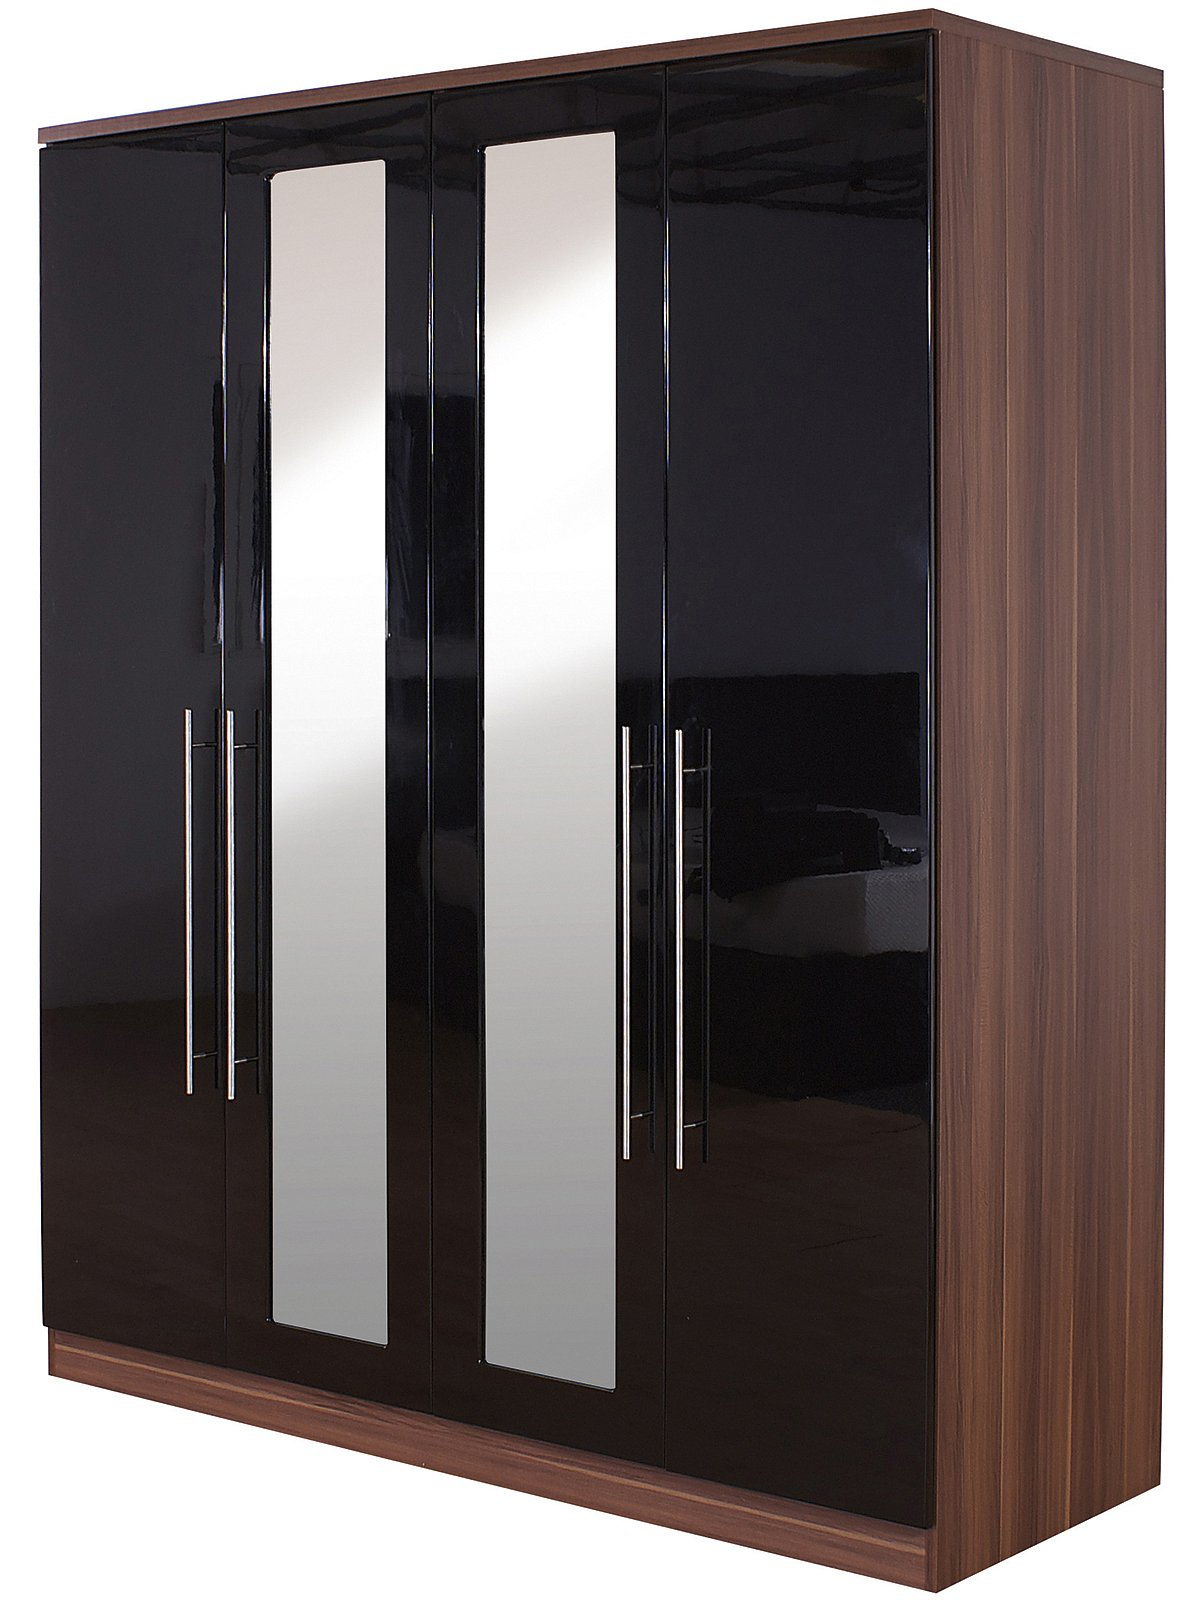 Gfw The Furniture Warehouse Modular 4 Door Robe Mirrors